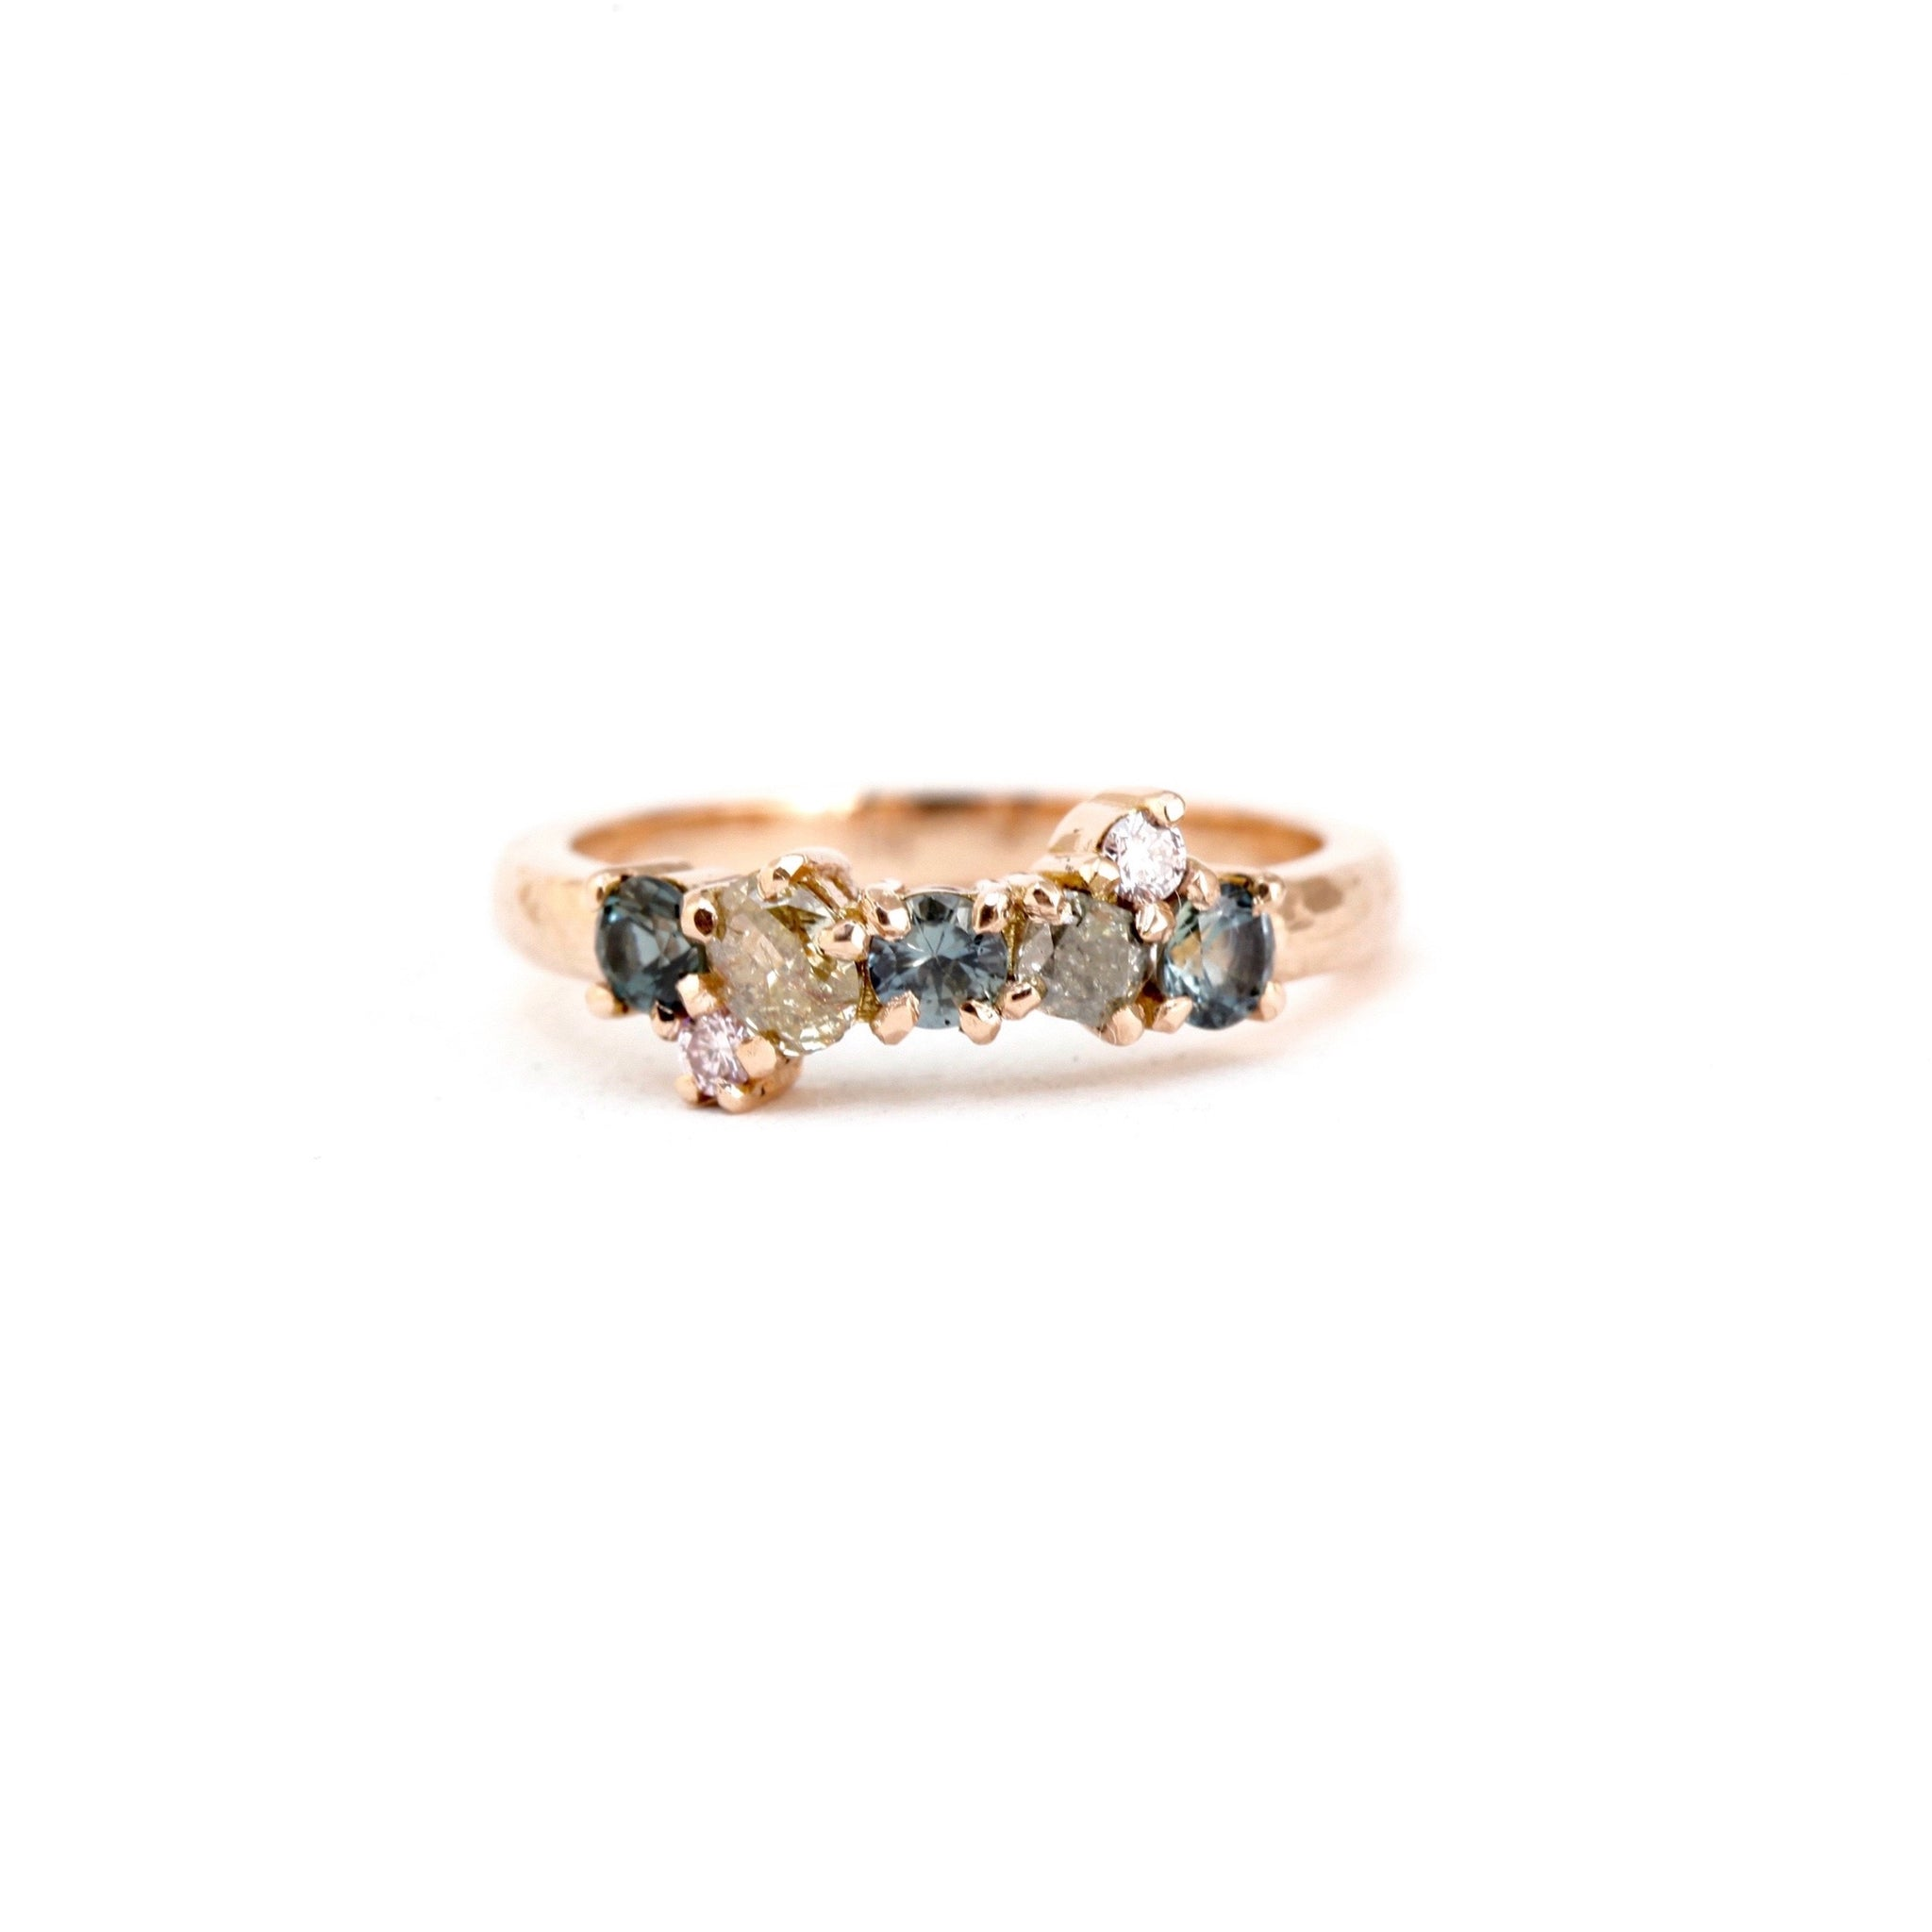 Australian sapphire and diamond rose gold wedding band in 18ct rose gold, bespoke custom handmade.